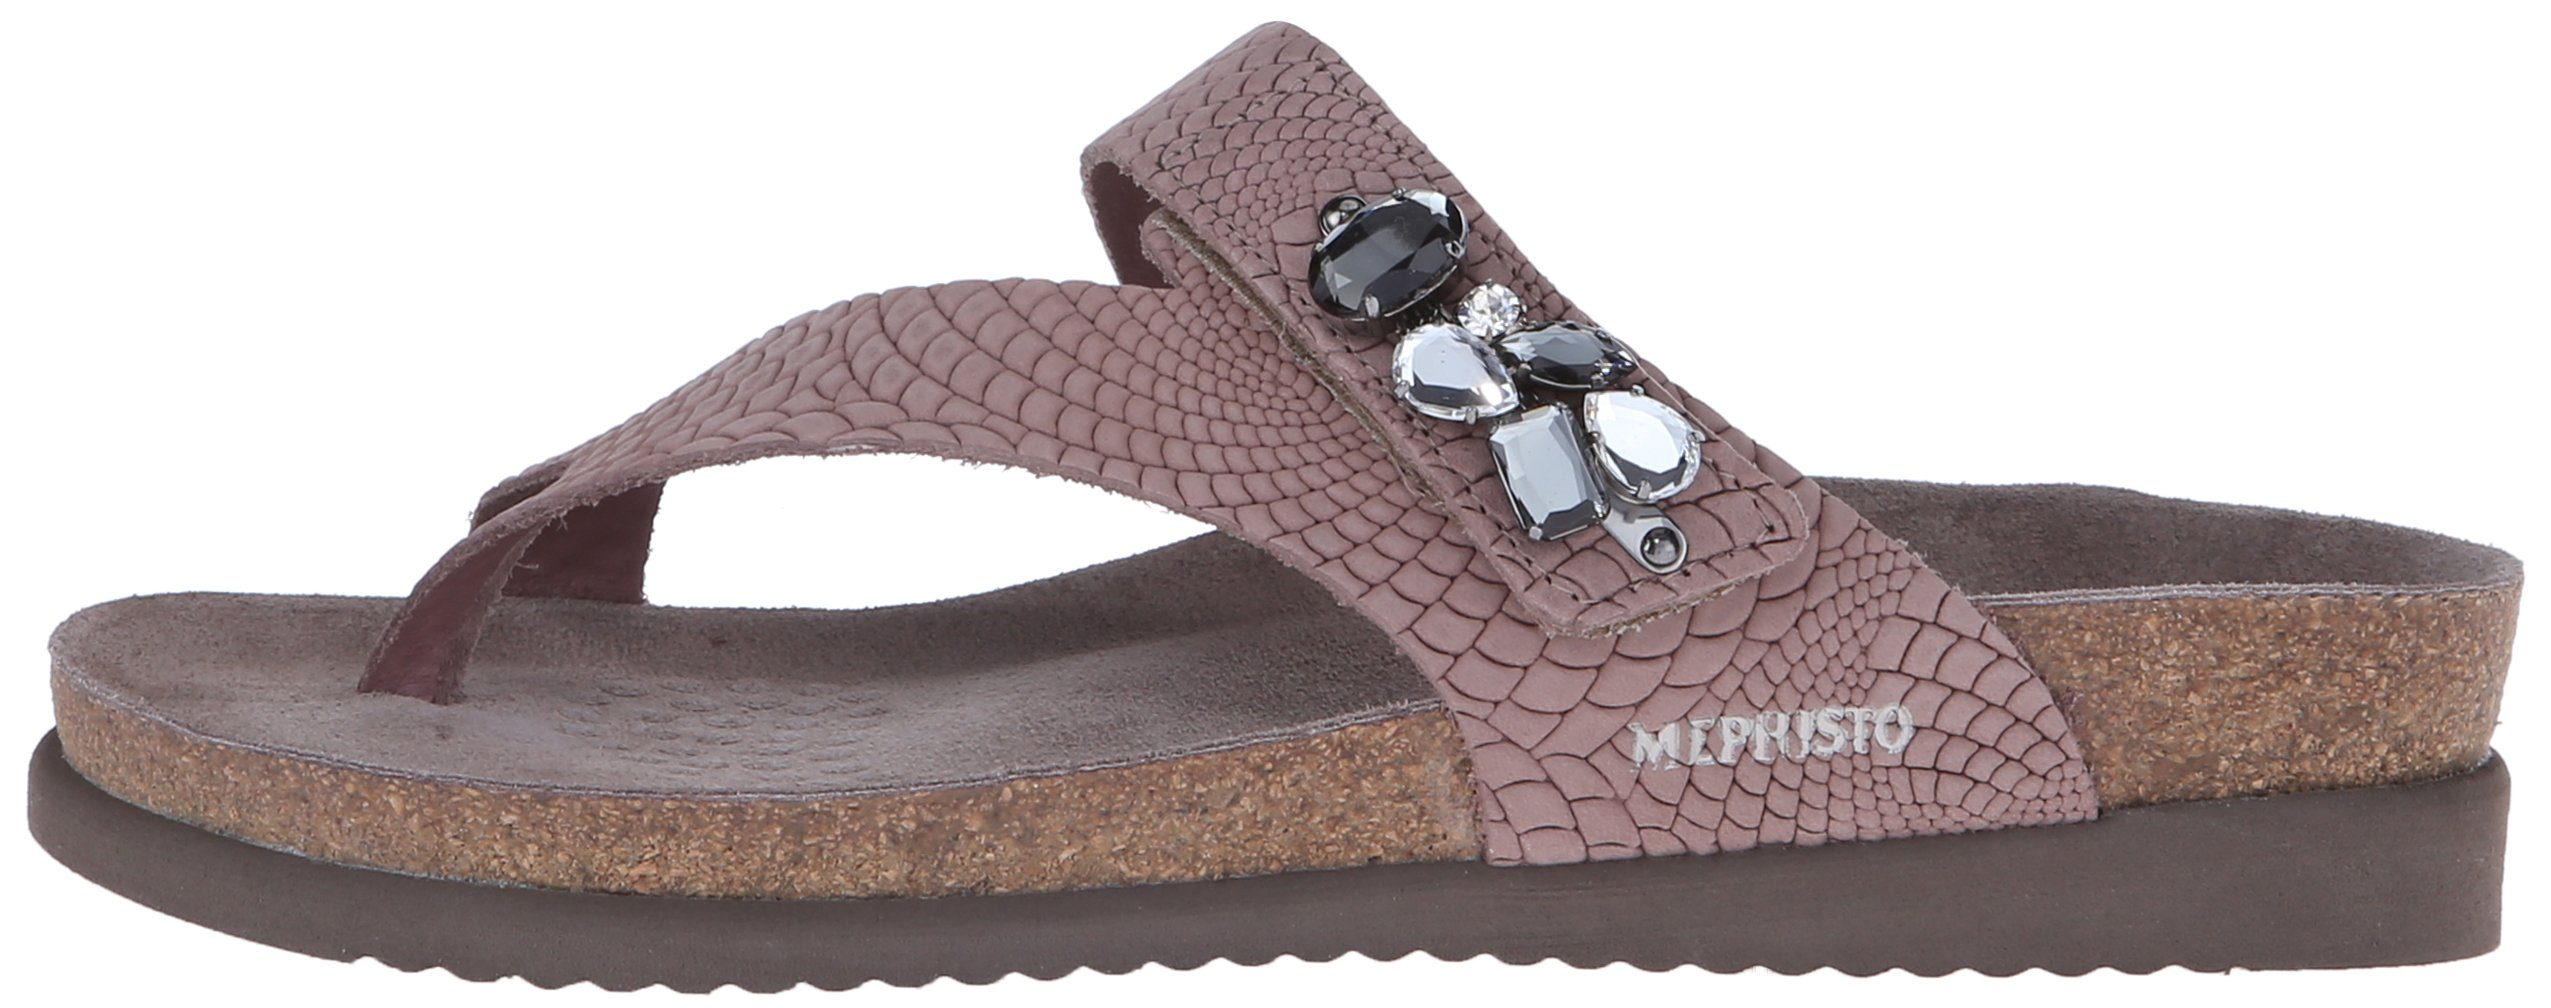 Mephisto Women's Halice Flip Flop, Old Pink Rio, 9 M US by Mephisto (Image #5)